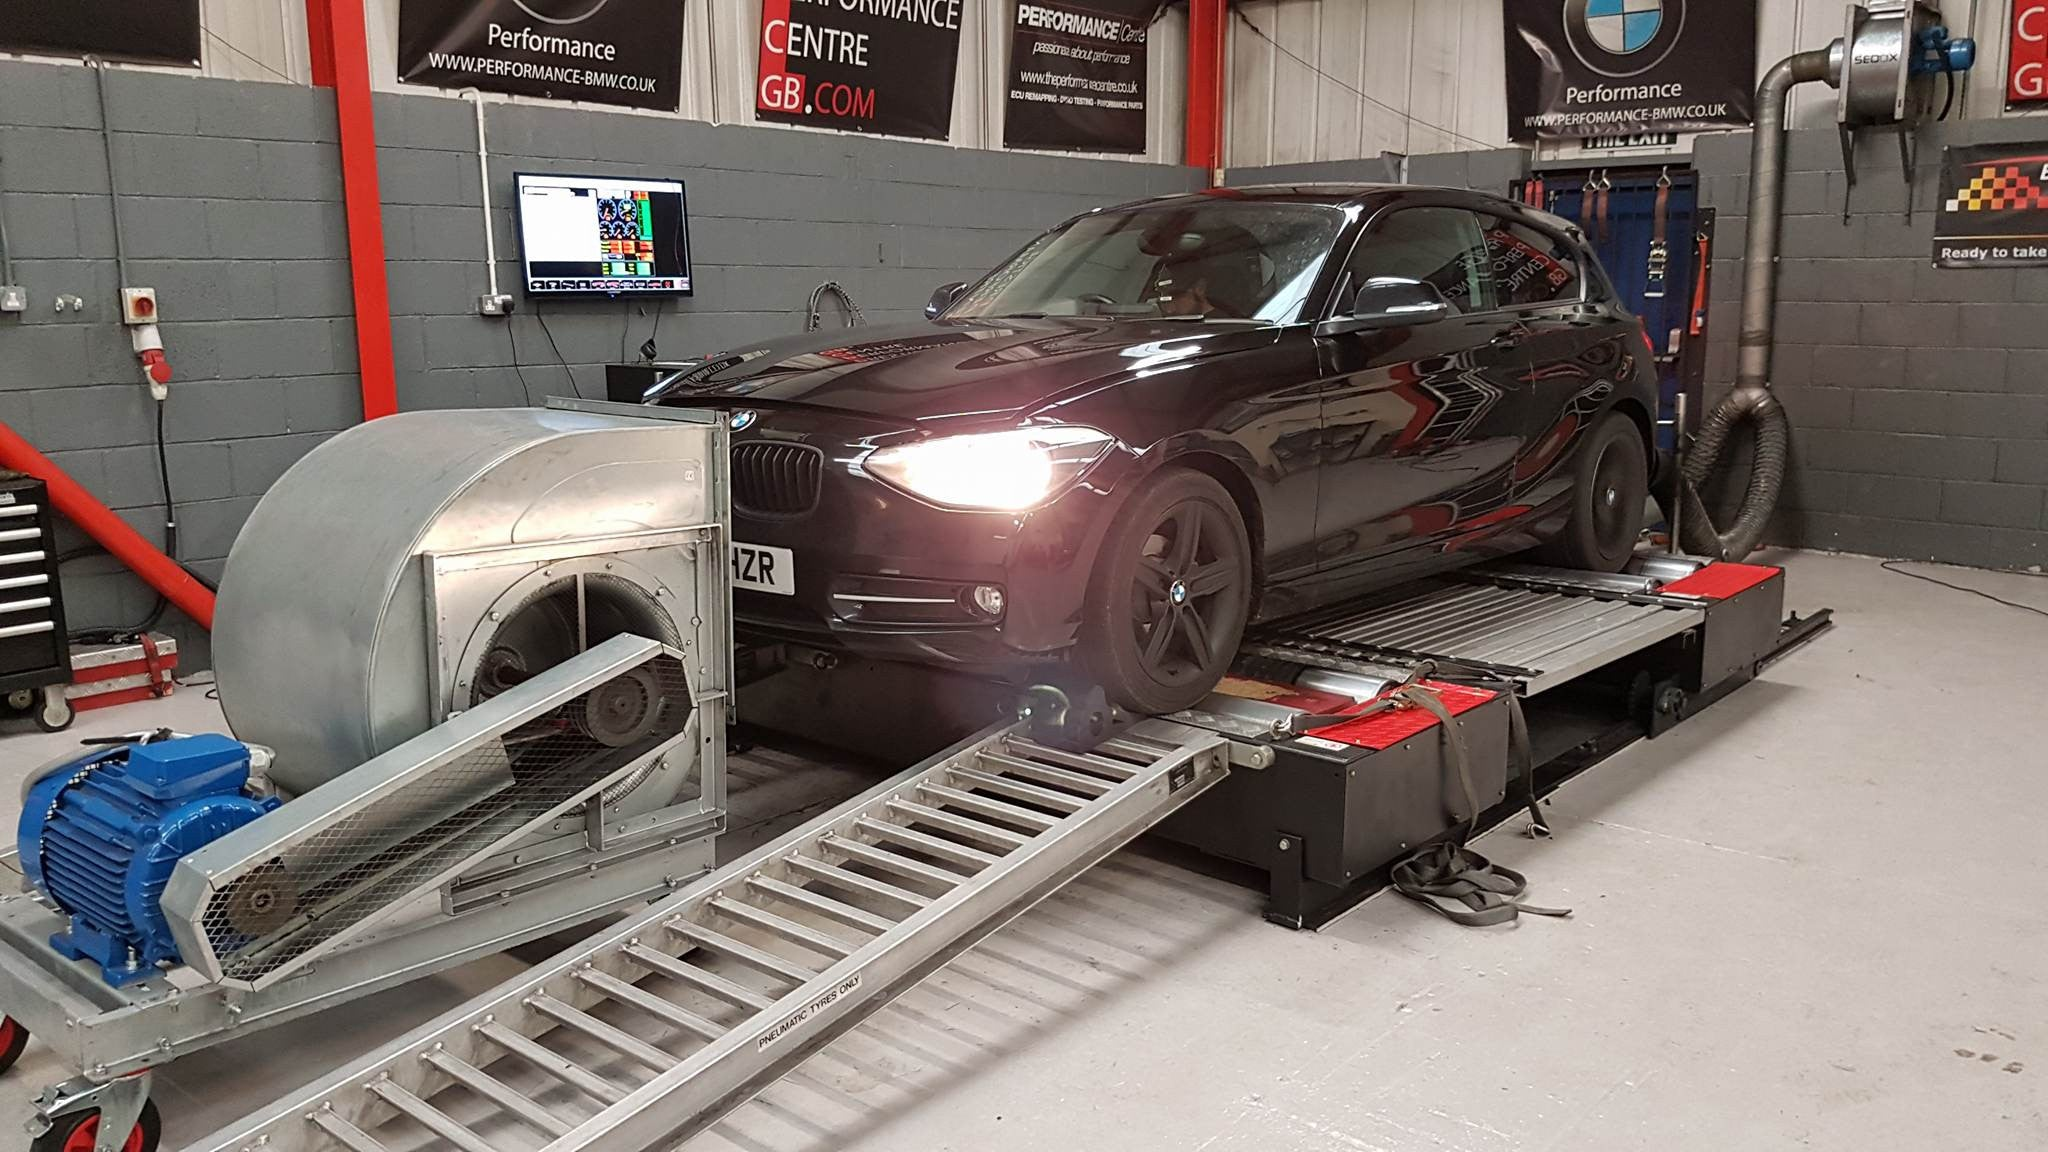 BMW 116i N13B16 - CustomPro Remap